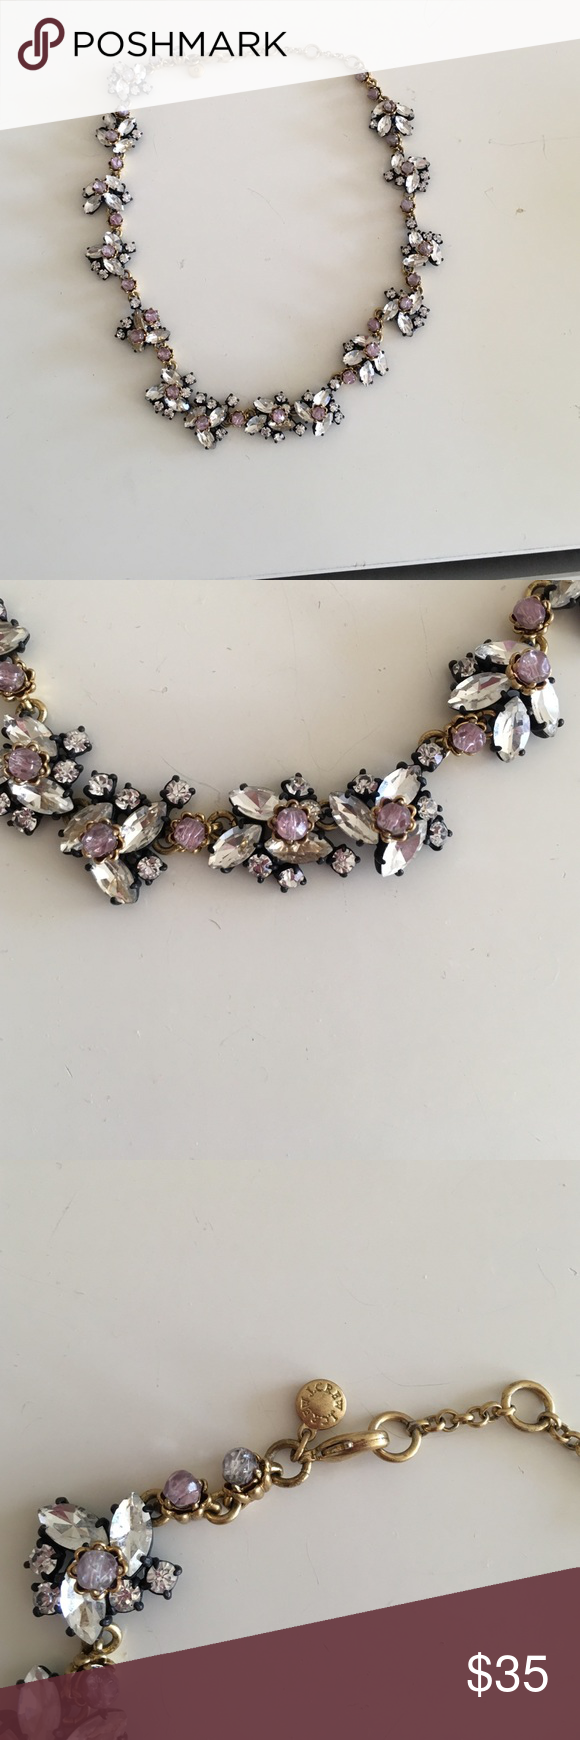 J crew necklace This j crew necklace has a gold chain with clear crystals and rounded amethyst stones. It dresses up y outfit. Great with scoop neck and crew neck shirts. J. Crew Jewelry Necklaces